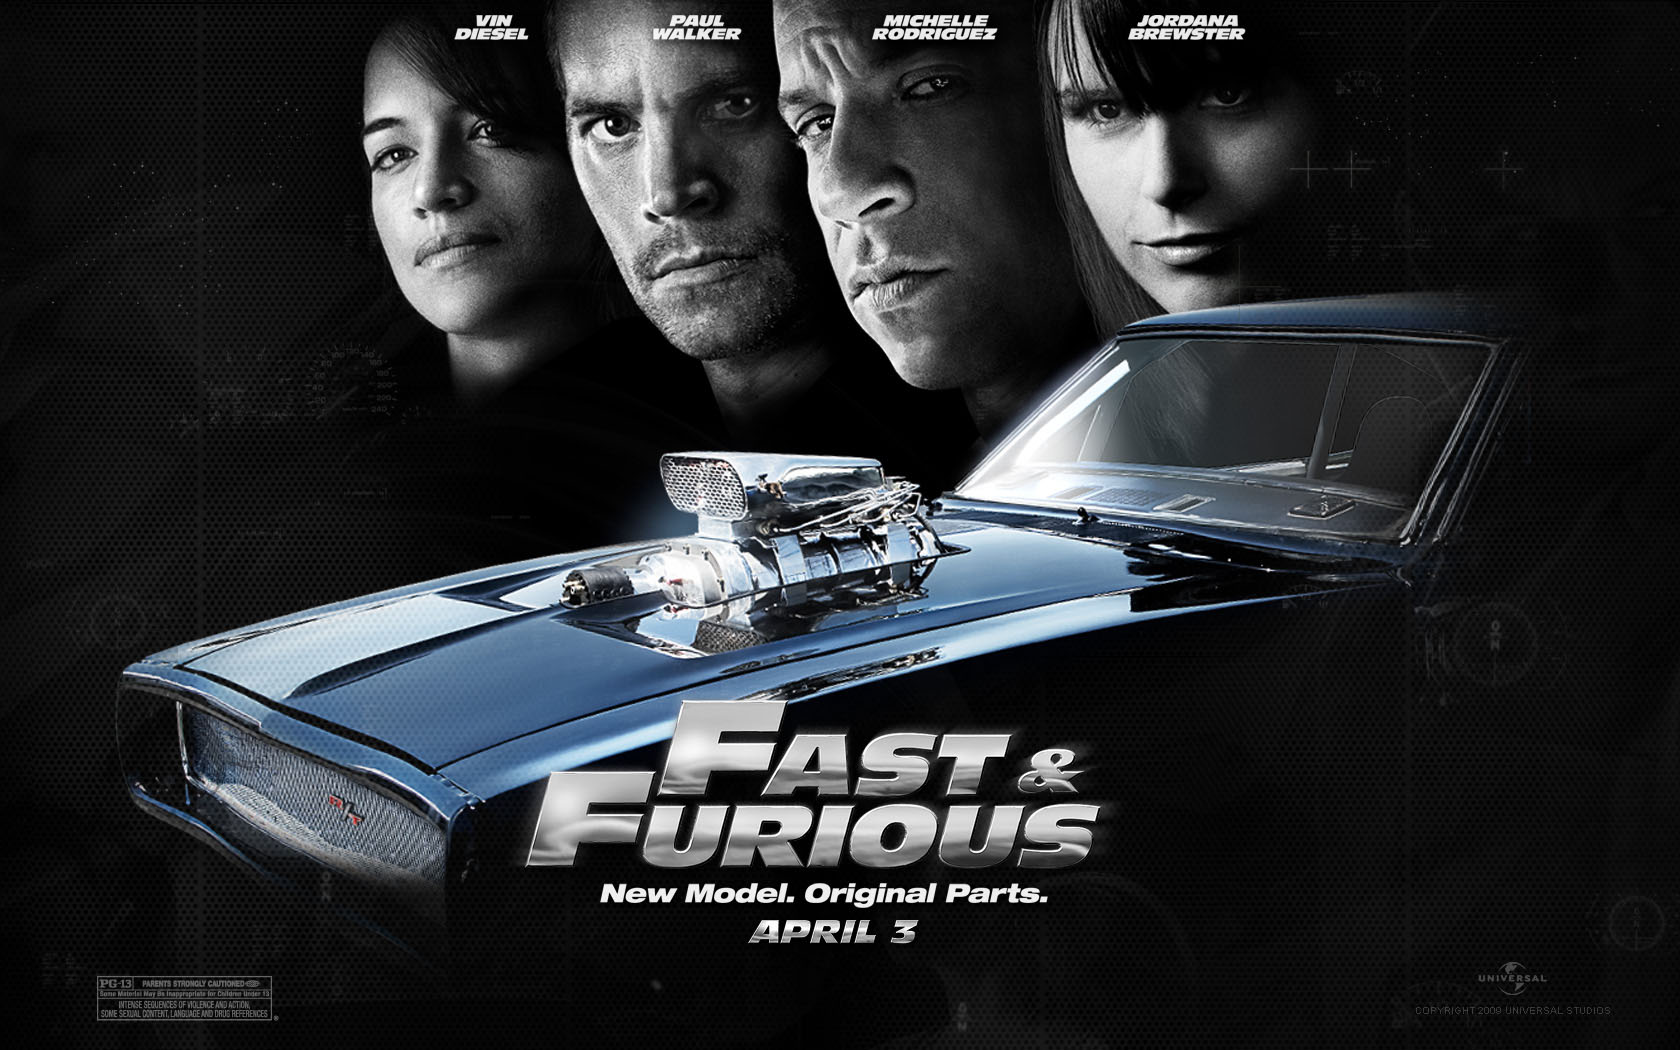 fast and furious taps hispanic audiences